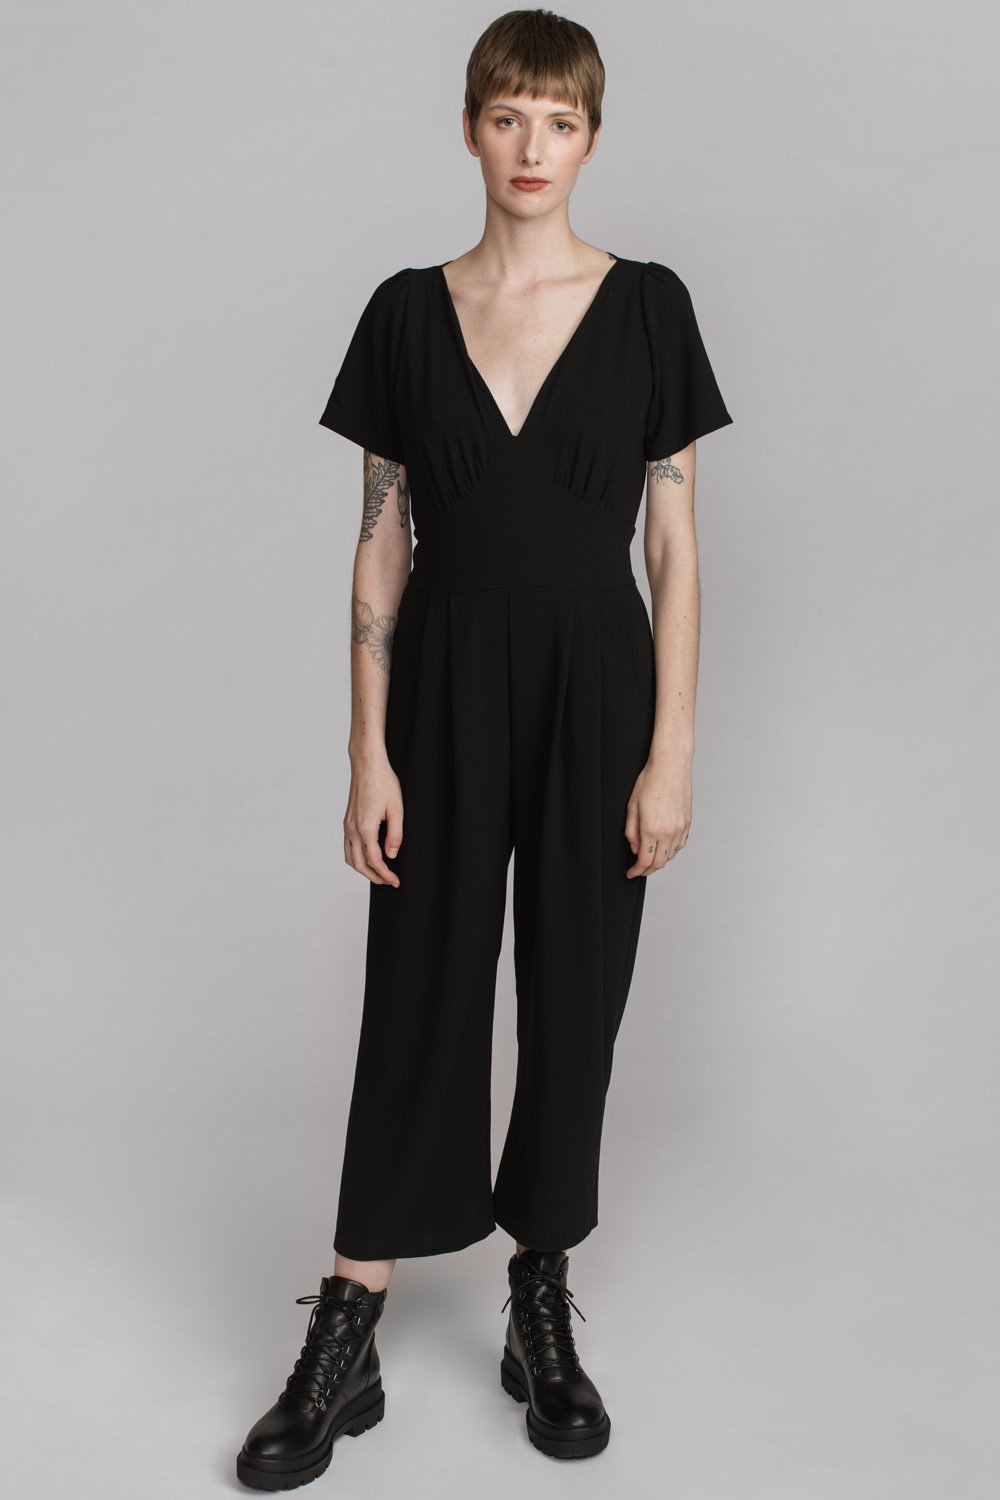 Troi Jumpsuit- Charcoal or Jade